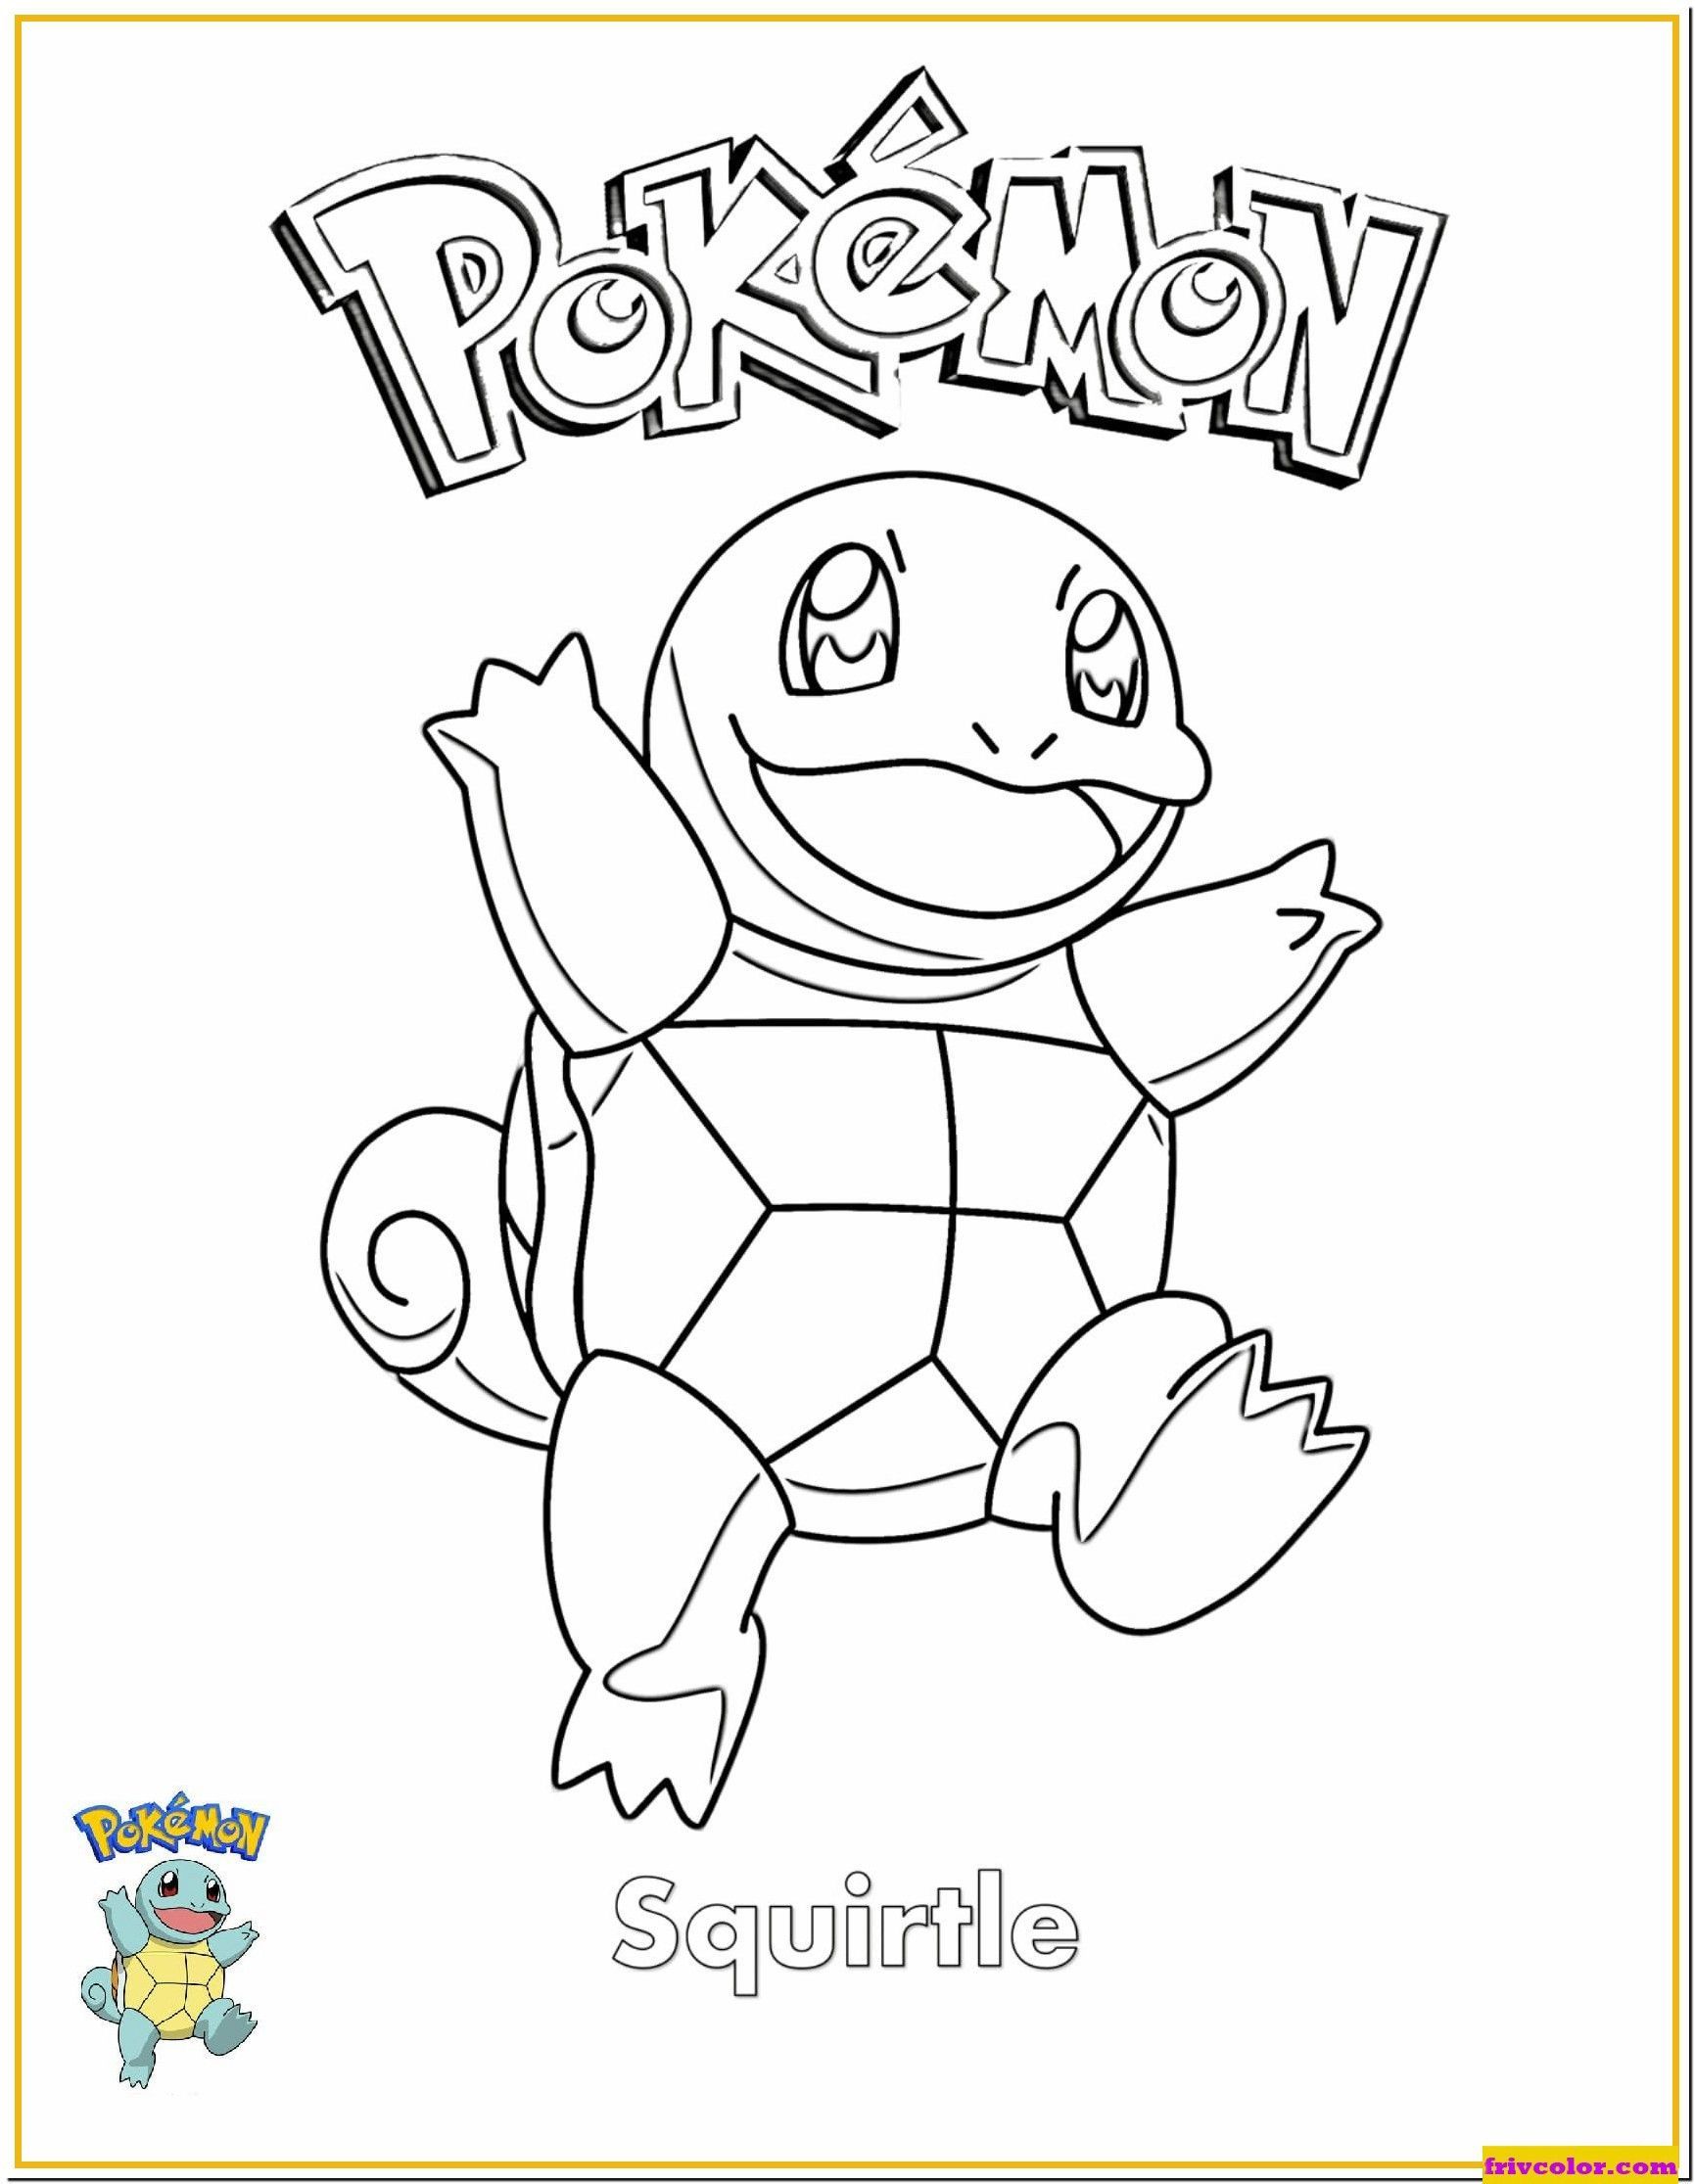 Squirtle Pokemon Coloring Page Youngandtae Com In 2020 Pokemon Coloring Pages Pokemon Coloring Cool Coloring Pages